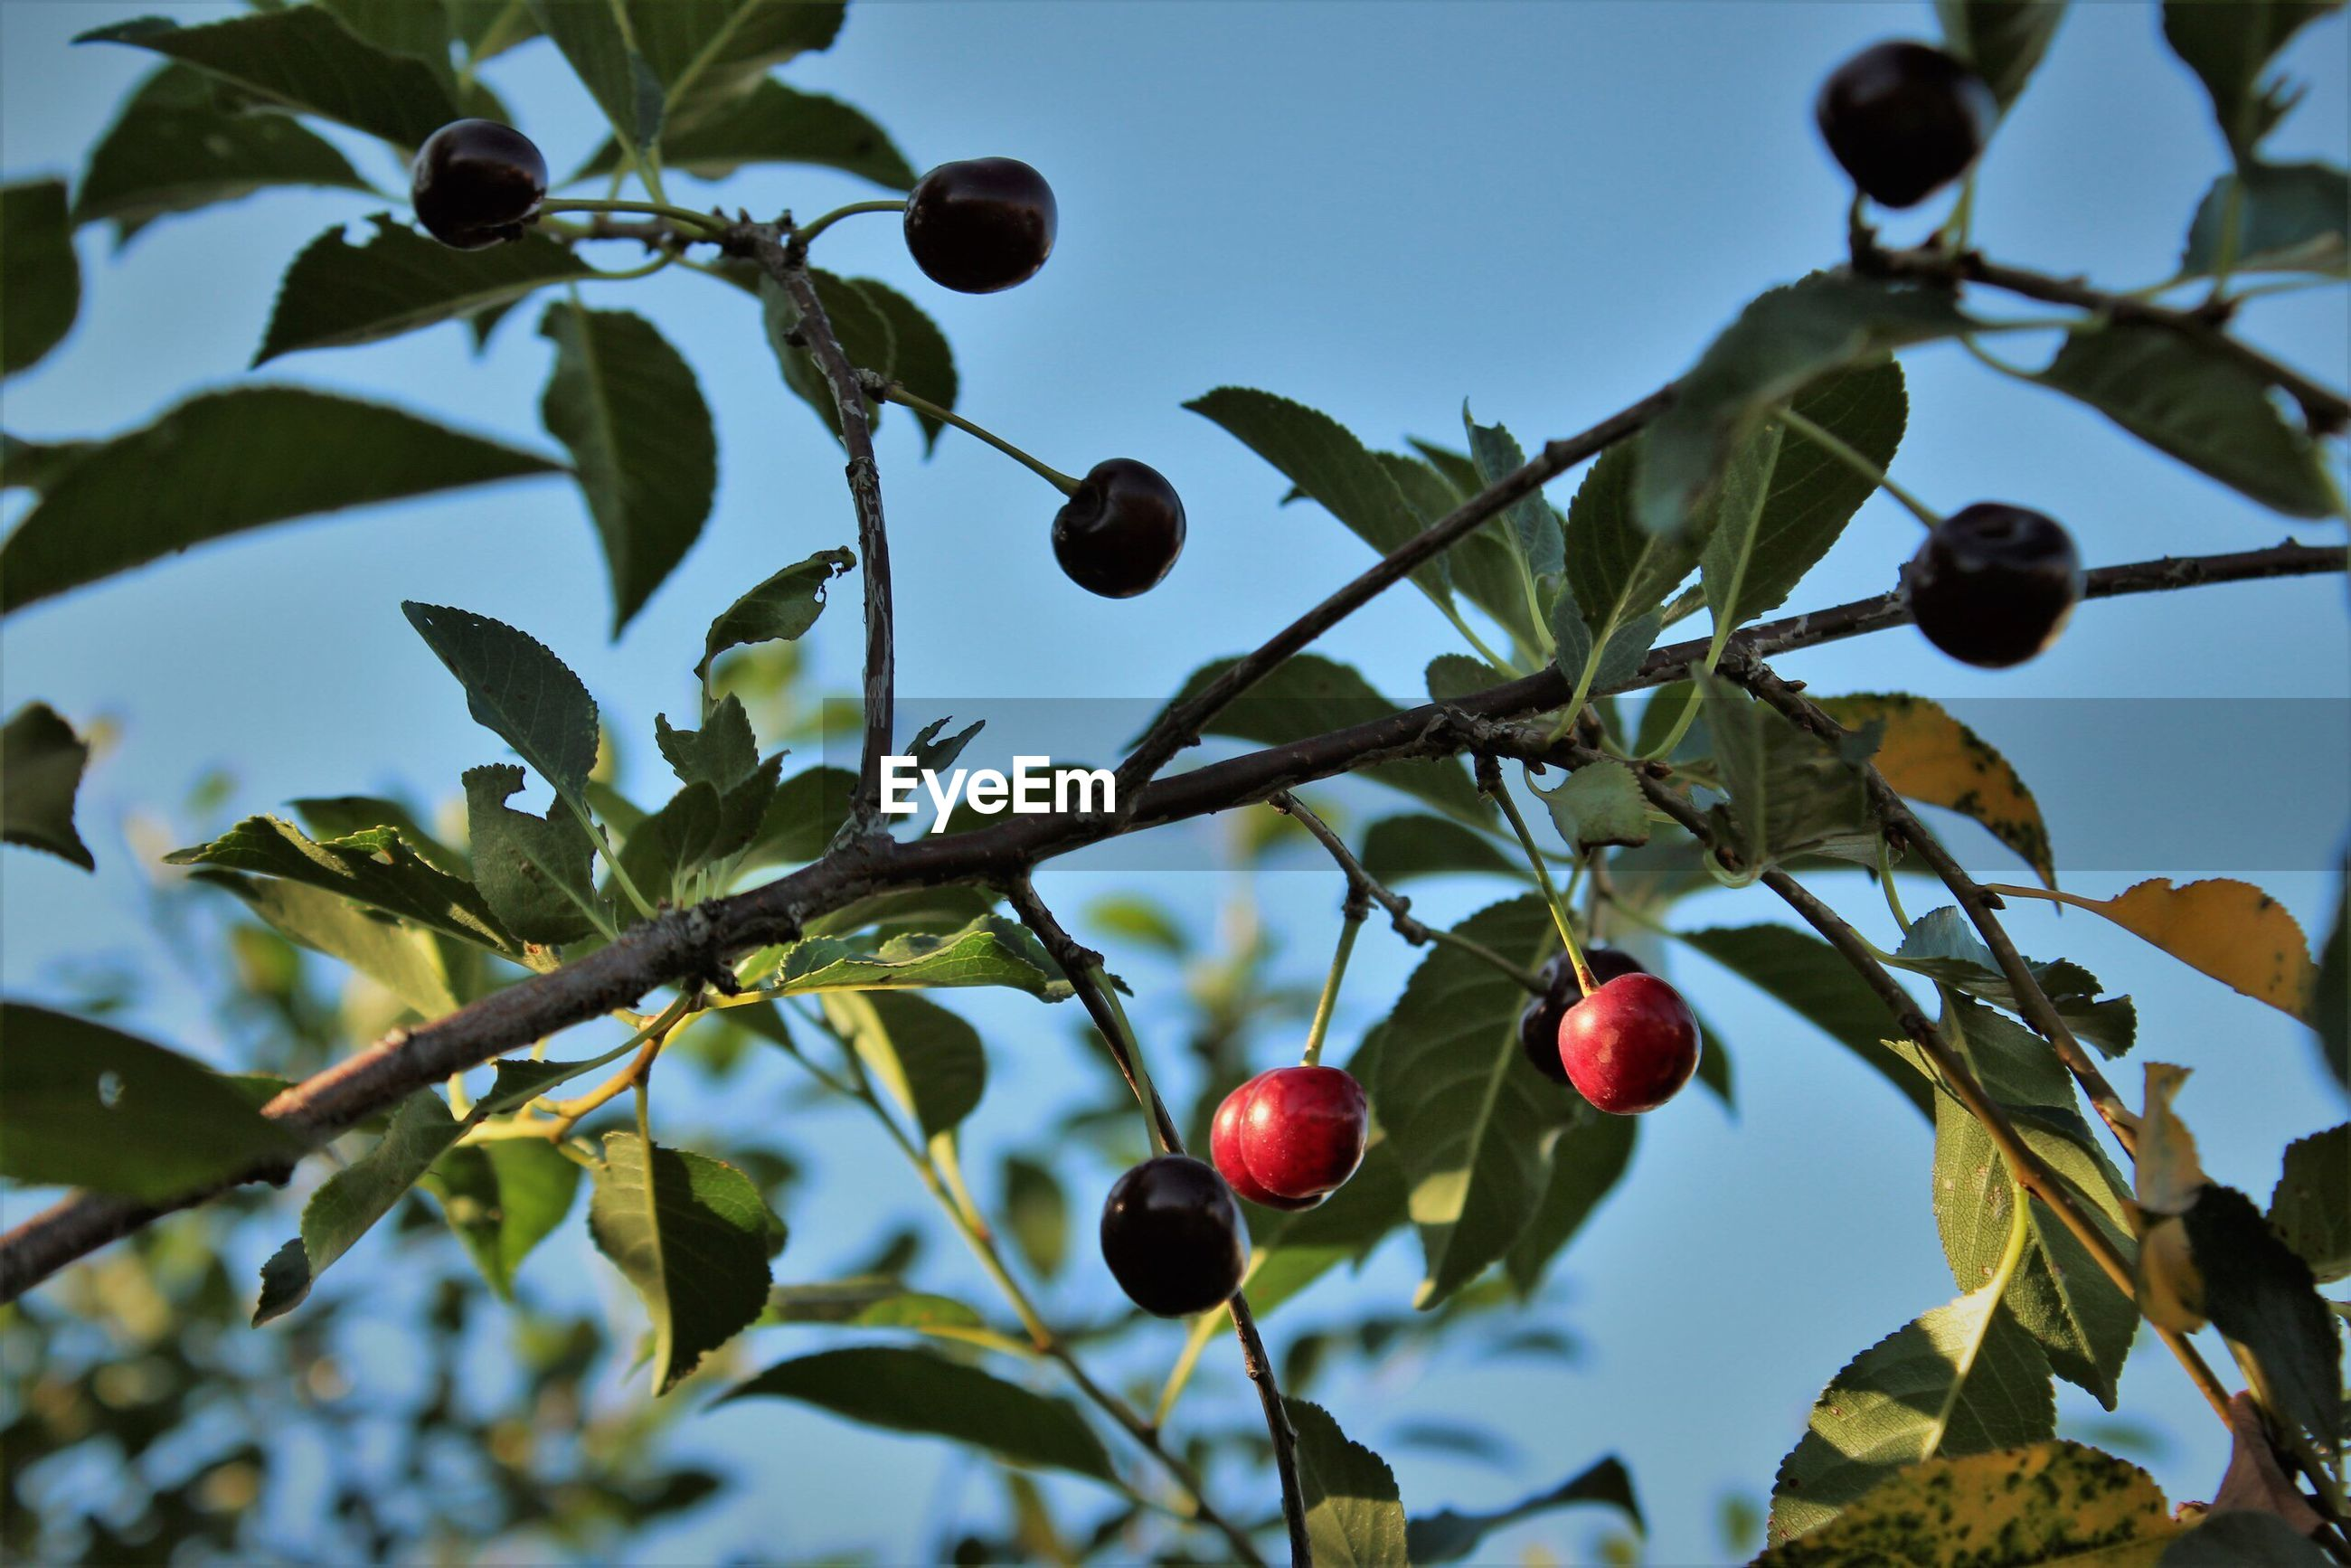 fruit, tree, food and drink, branch, growth, leaf, low angle view, day, nature, outdoors, food, red, no people, focus on foreground, healthy eating, twig, freshness, beauty in nature, close-up, sky